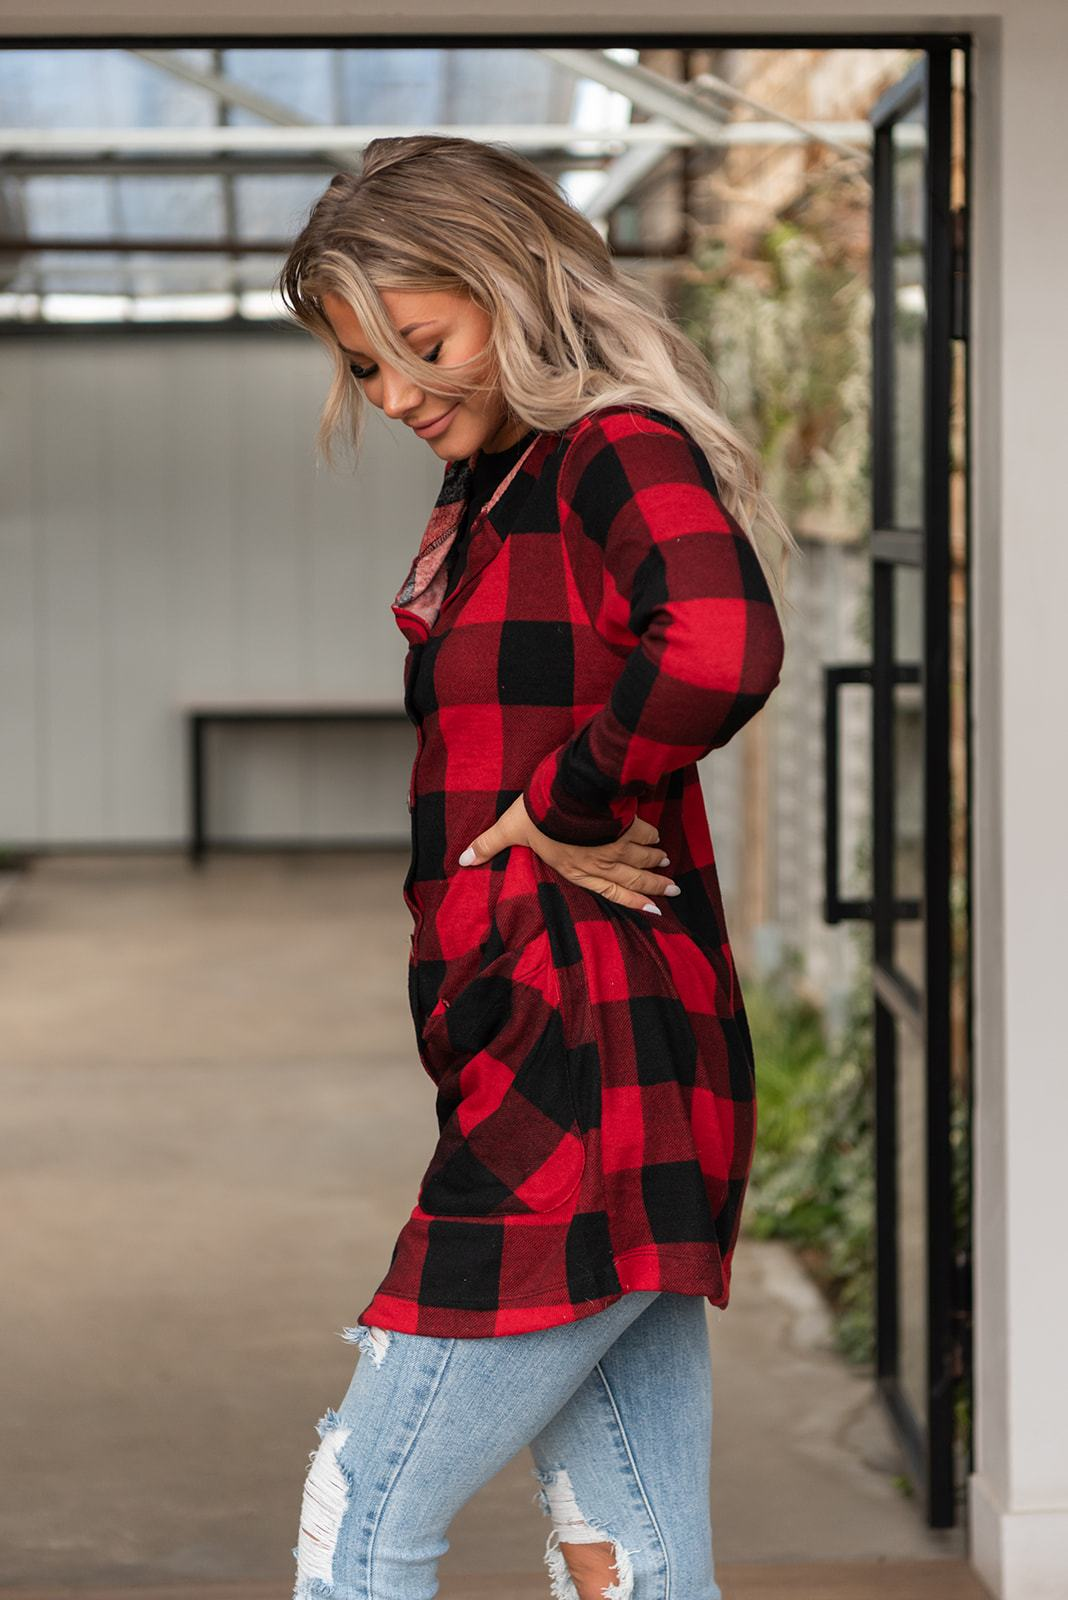 "Features: Buffalo plaid printed cardigan with button up front, pockets and hood. Runs true to size.  Fabric: 96% Polyester, 4% Spandex  Approx Measurements:  Small: Bust 40"", Length 33""  Medium: Bust 42"", Length 33""  Large: Bust 44"", Length 34""  Model Cassidy: 5'7 size 2/3 wearing size Small"